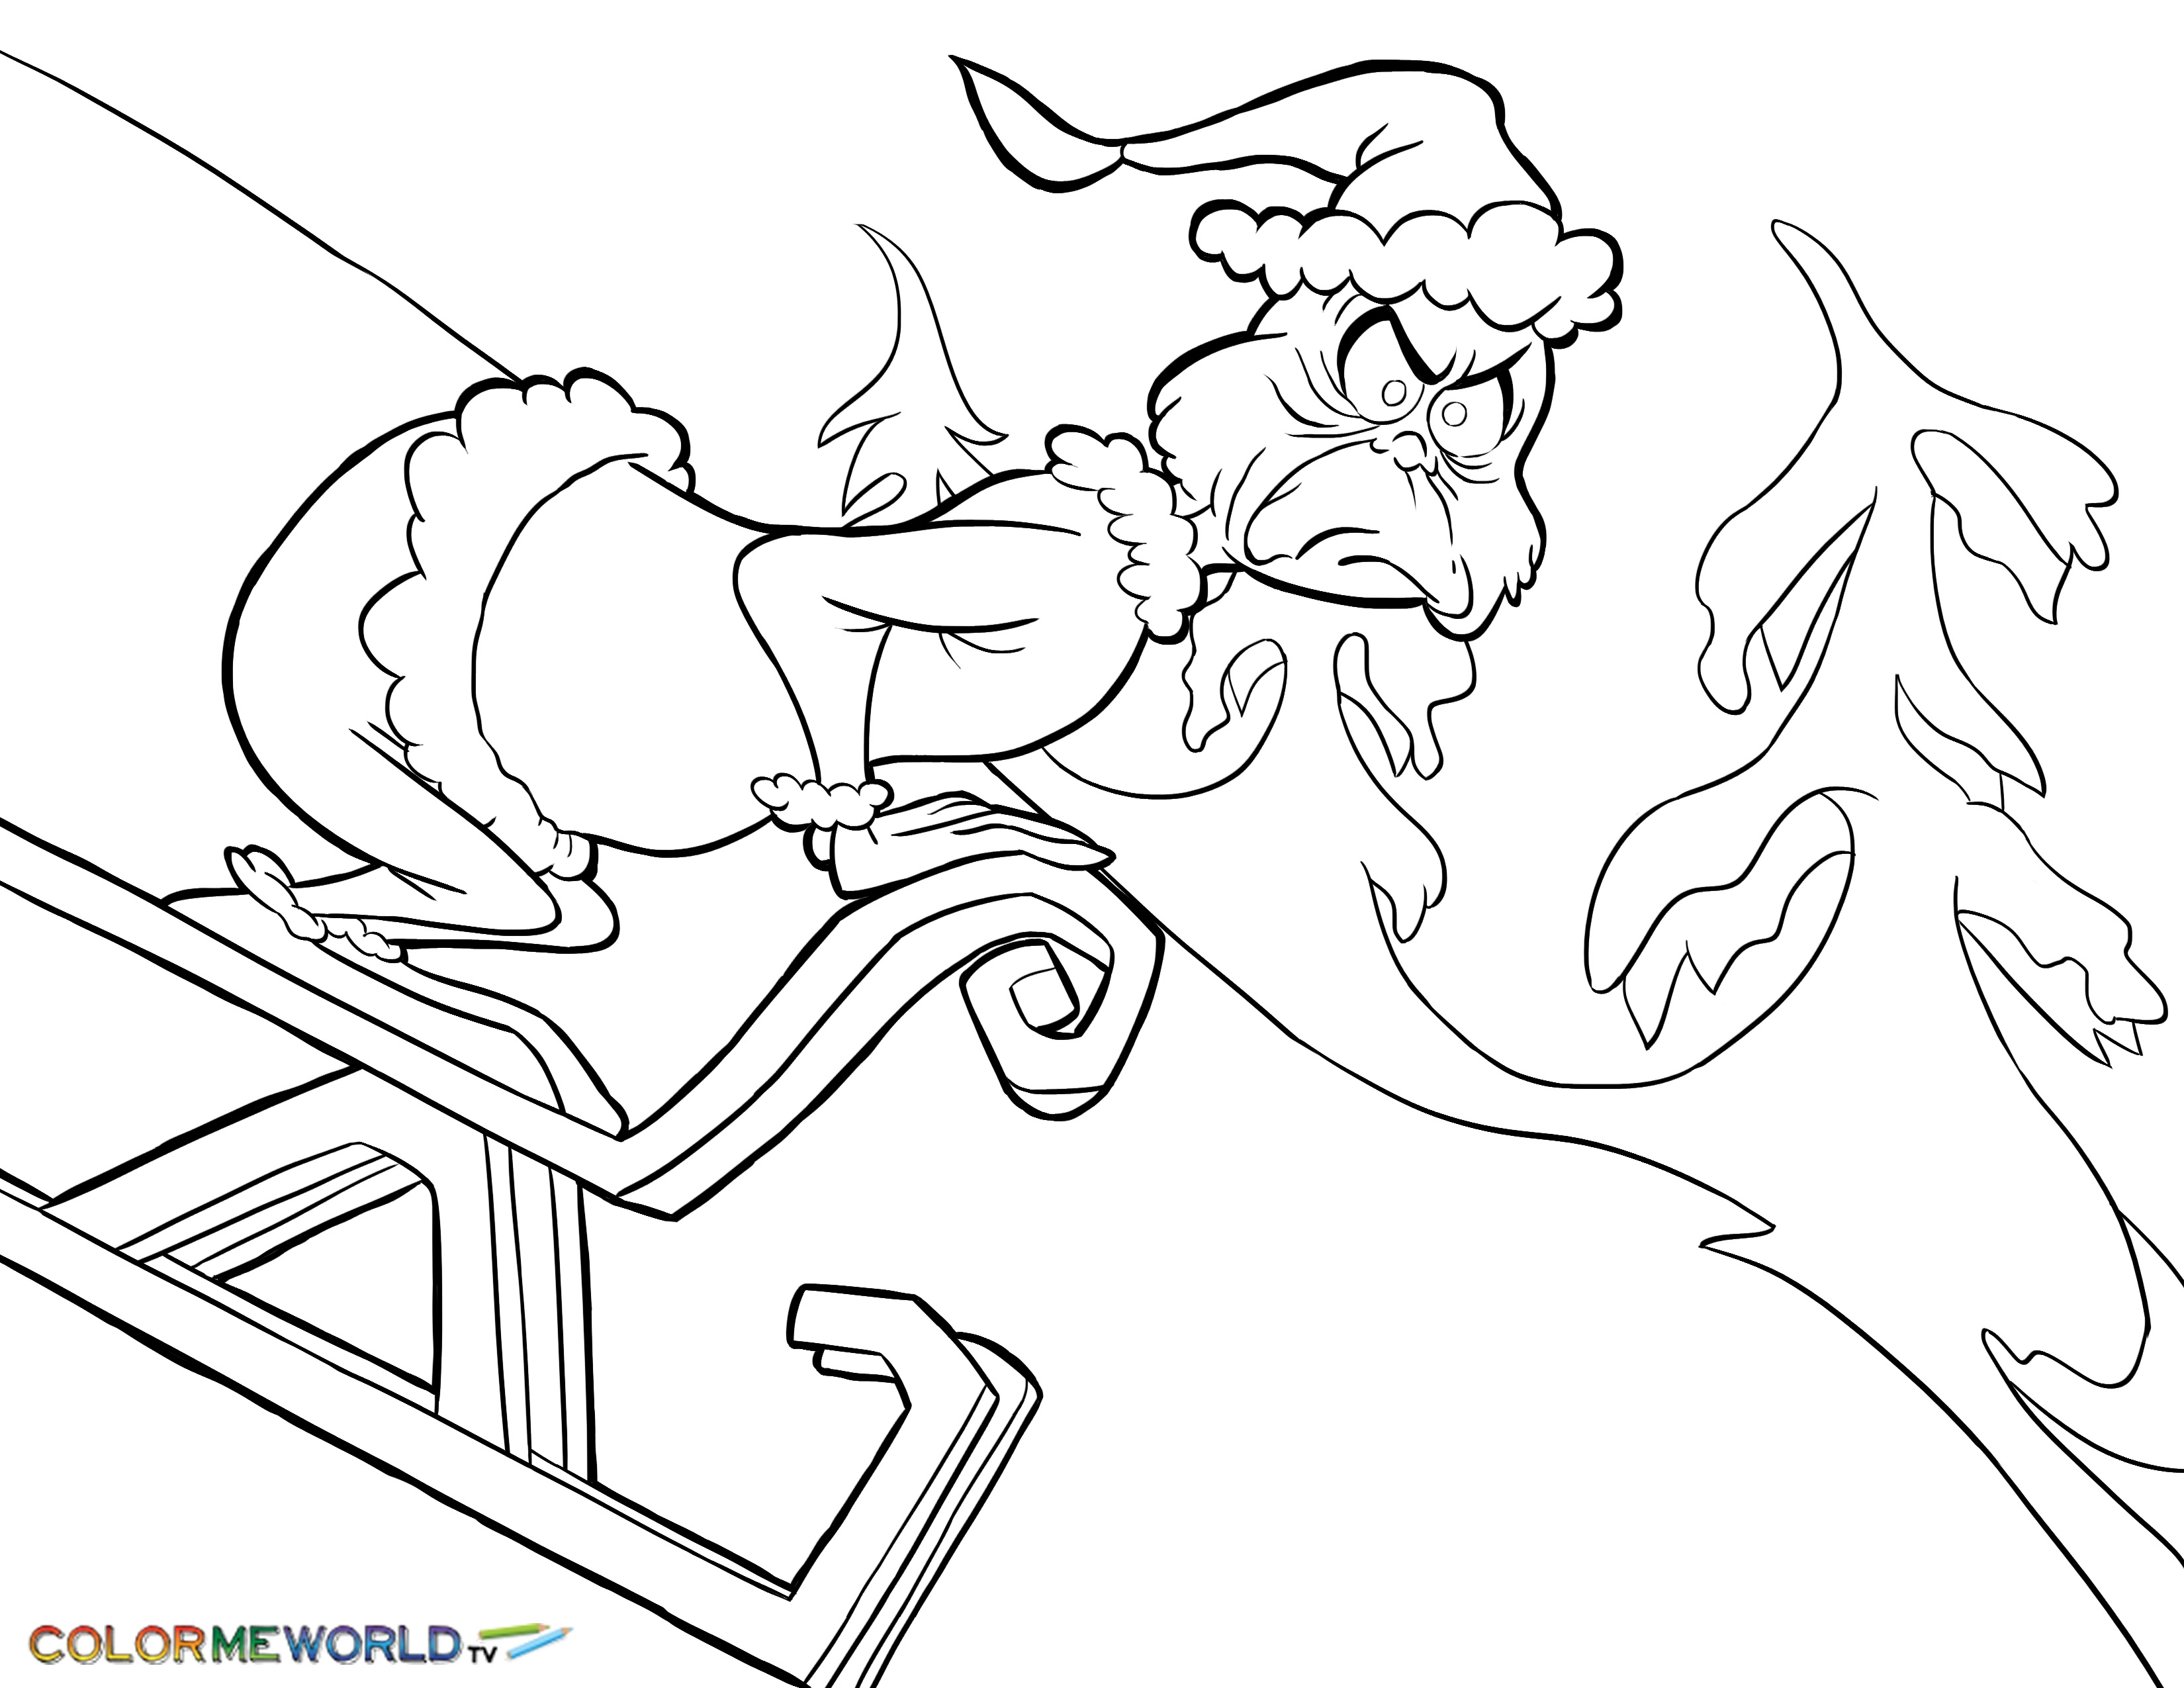 3300x2550 The Grinch Stole Christmas Coloring Pages In How